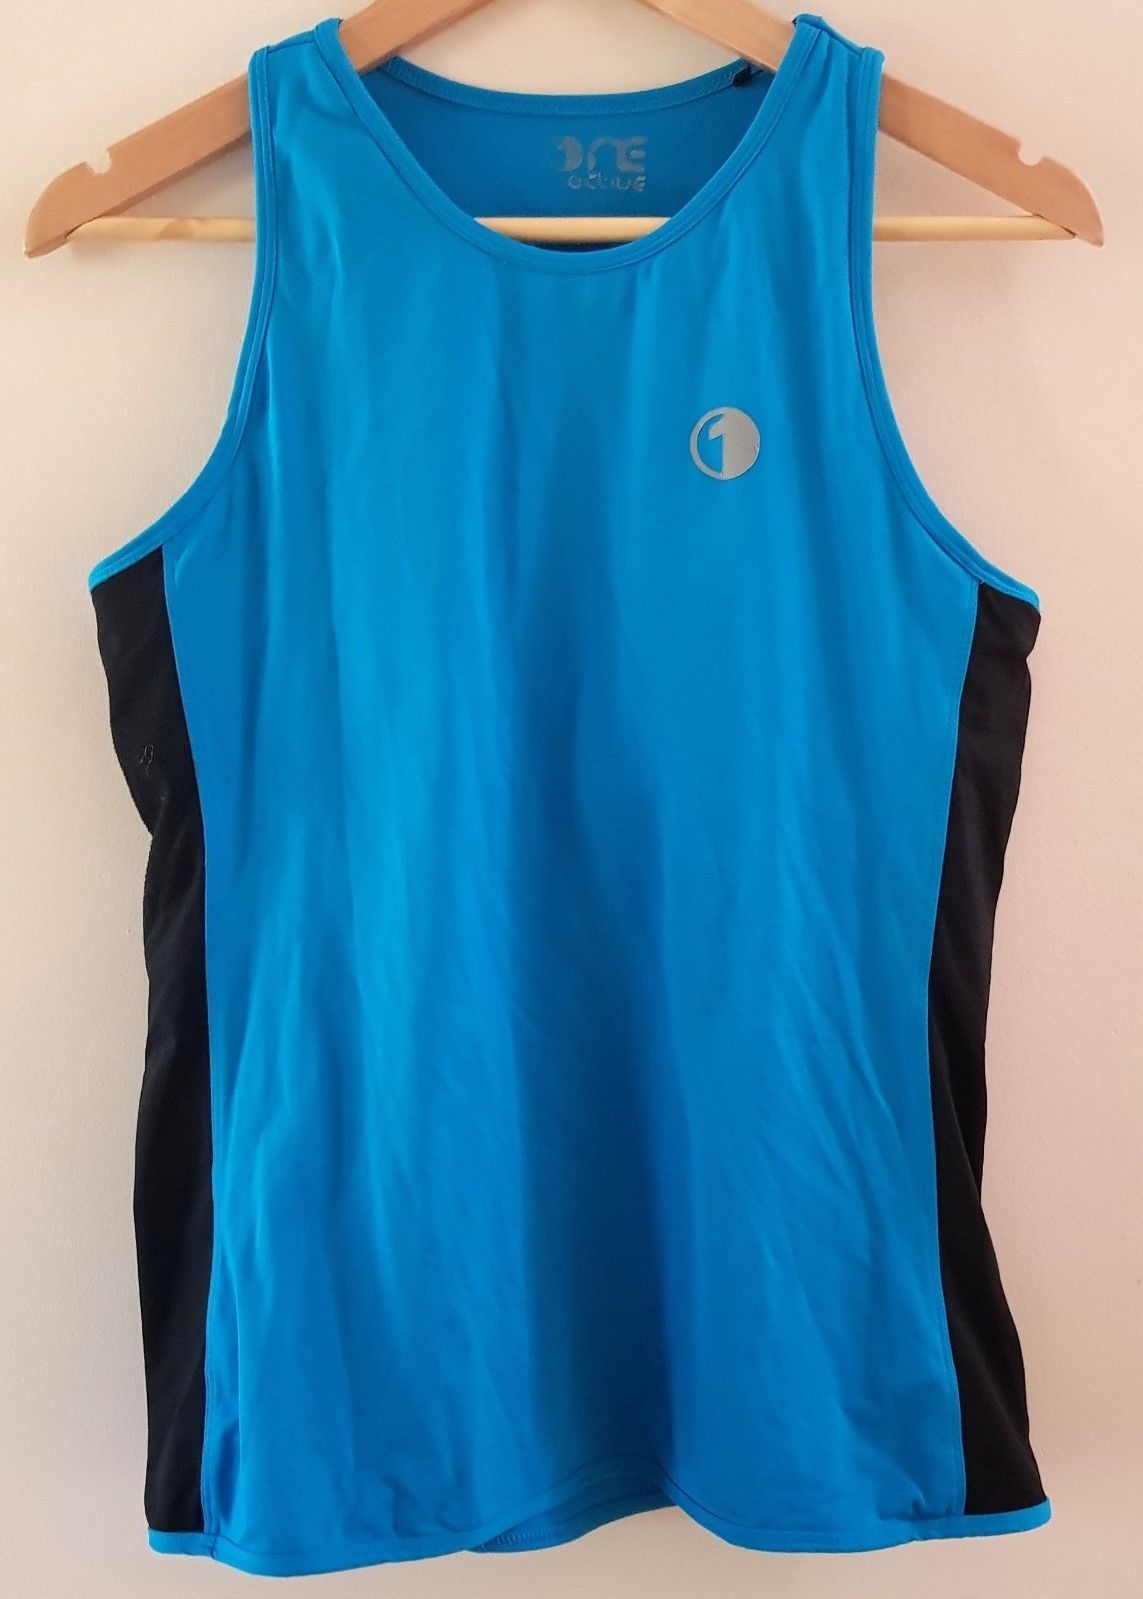 Michelle Bridges Size 18 Singlet Activewear Top Women's Clothing